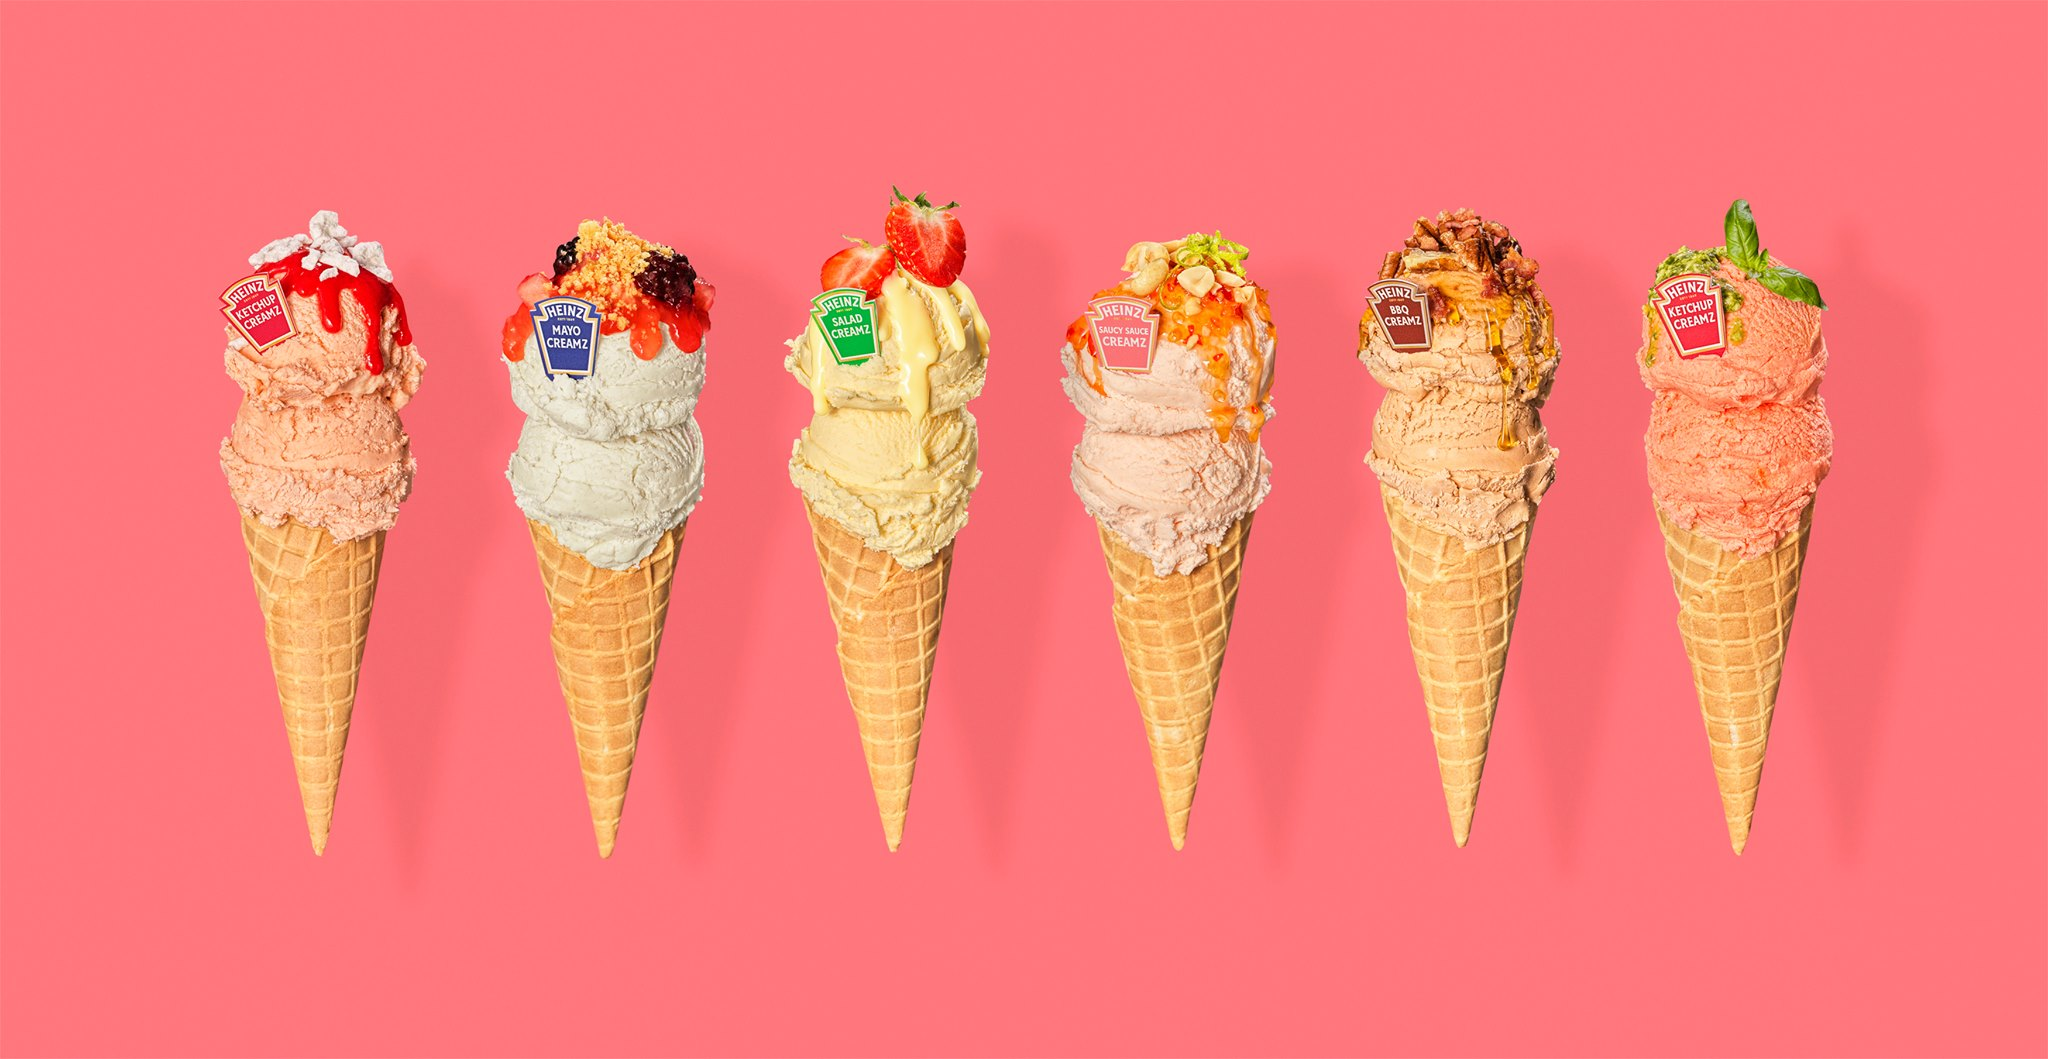 Ice cream cones featuring Heinz condiments on a pink background